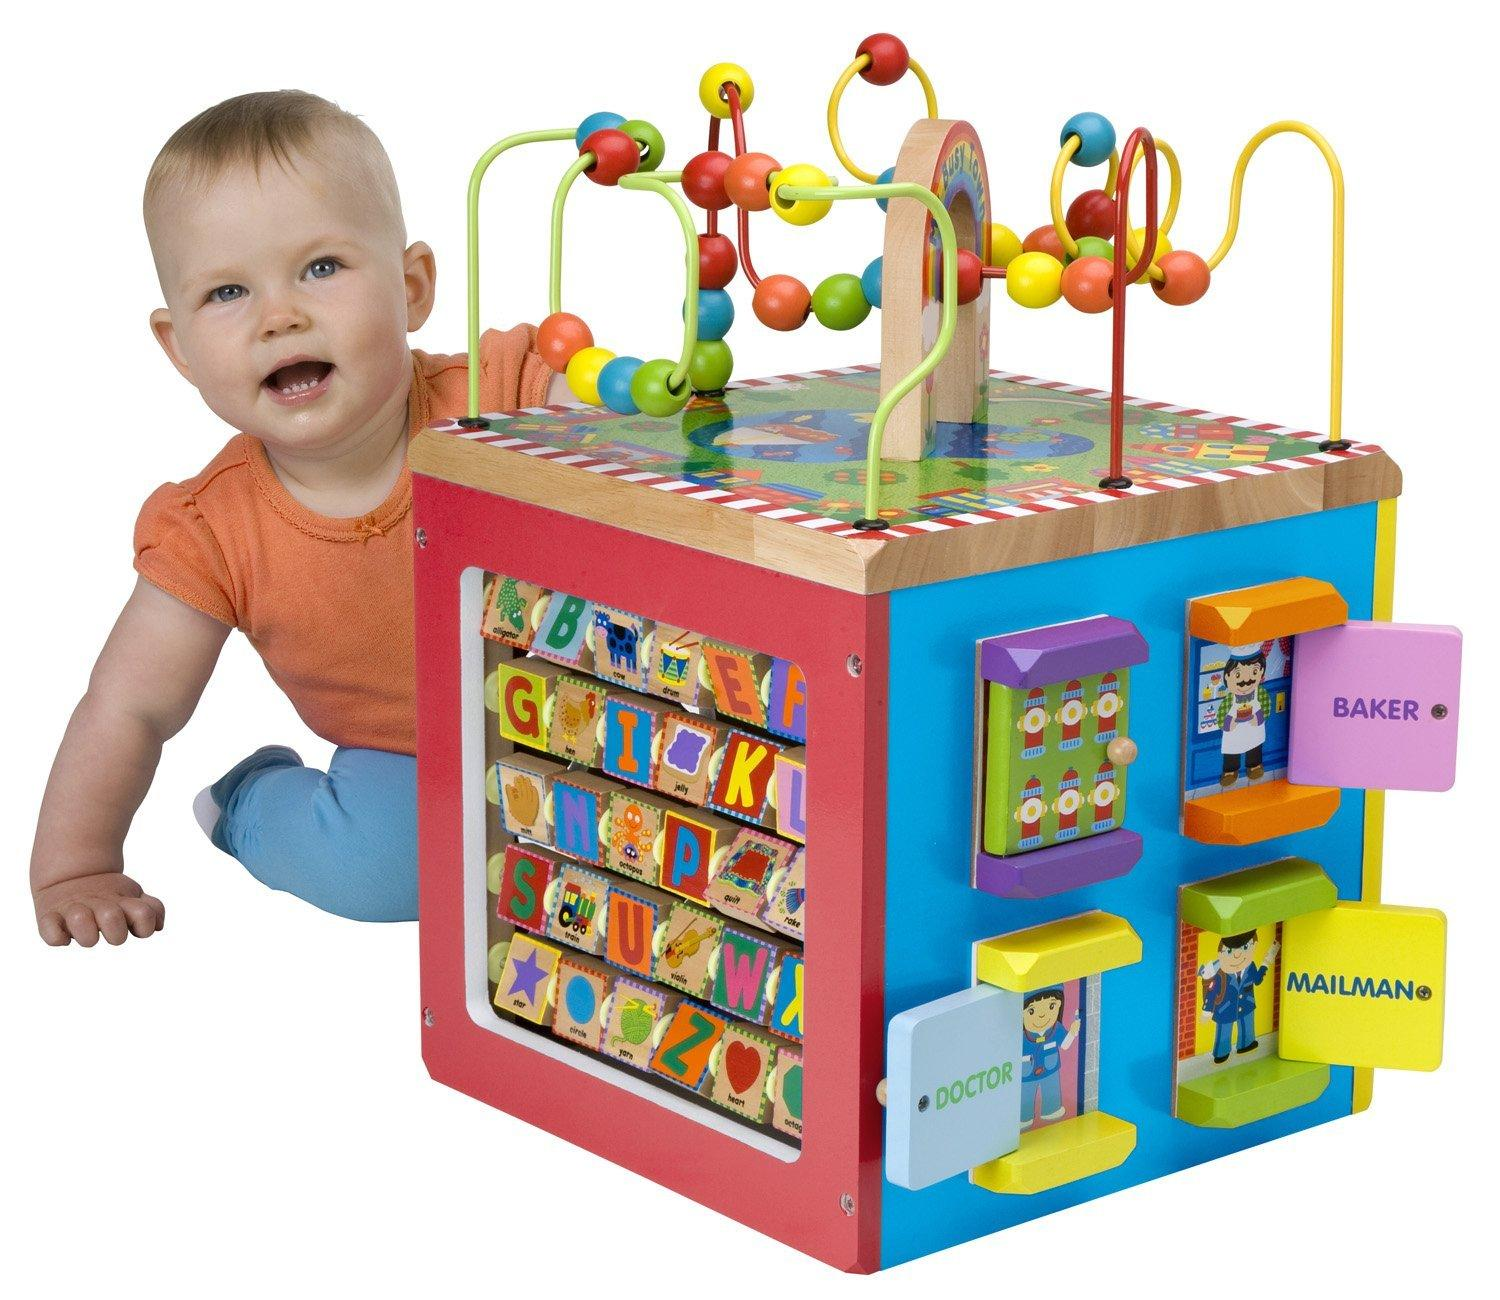 40% Off Alex Preschool Toys @ Amazon